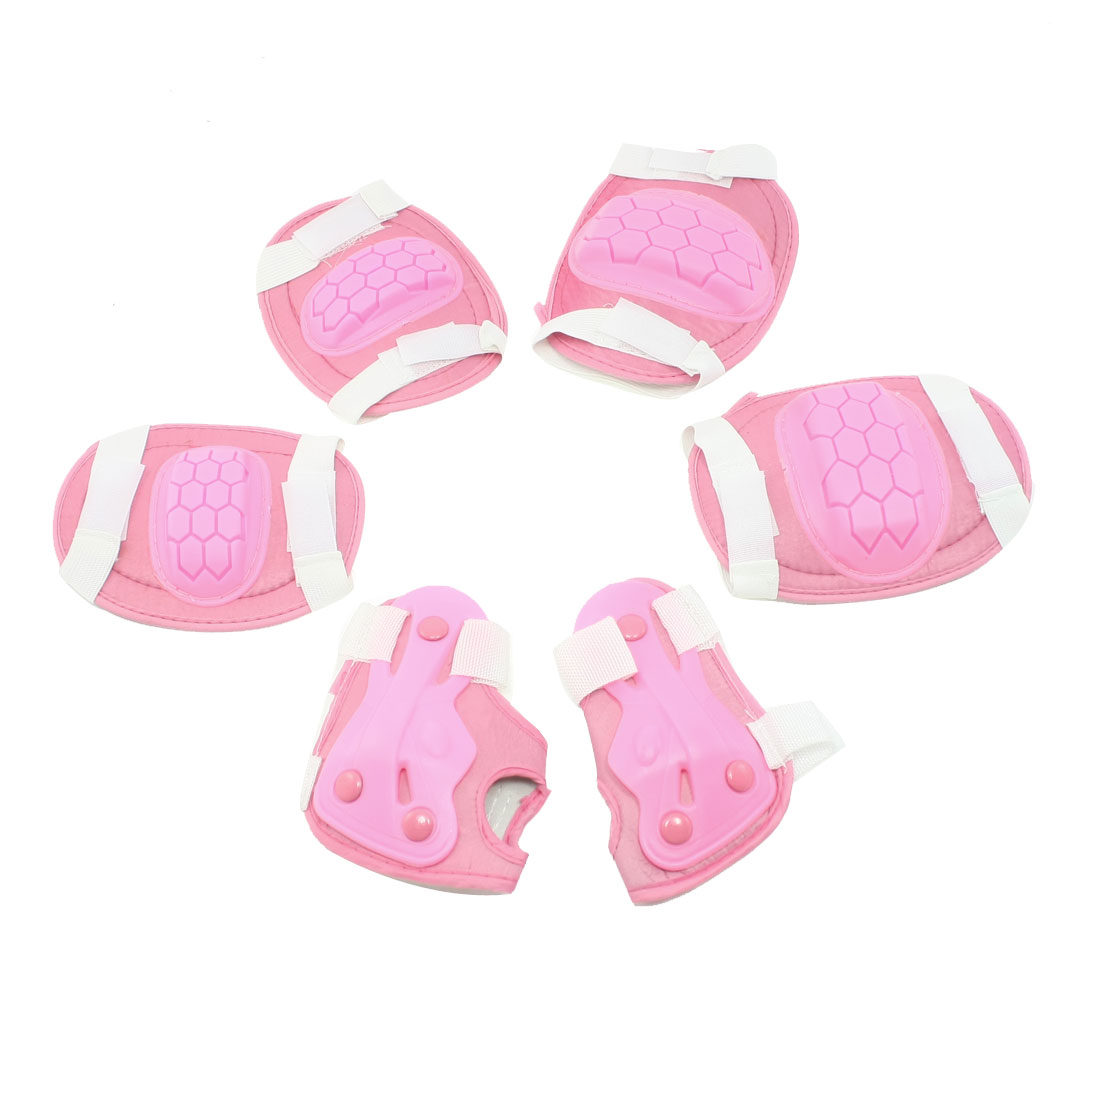 6 in 1 Cycling Skating Protection Gear Wrist Guard Elbow Knee Pads For little girls Kids by